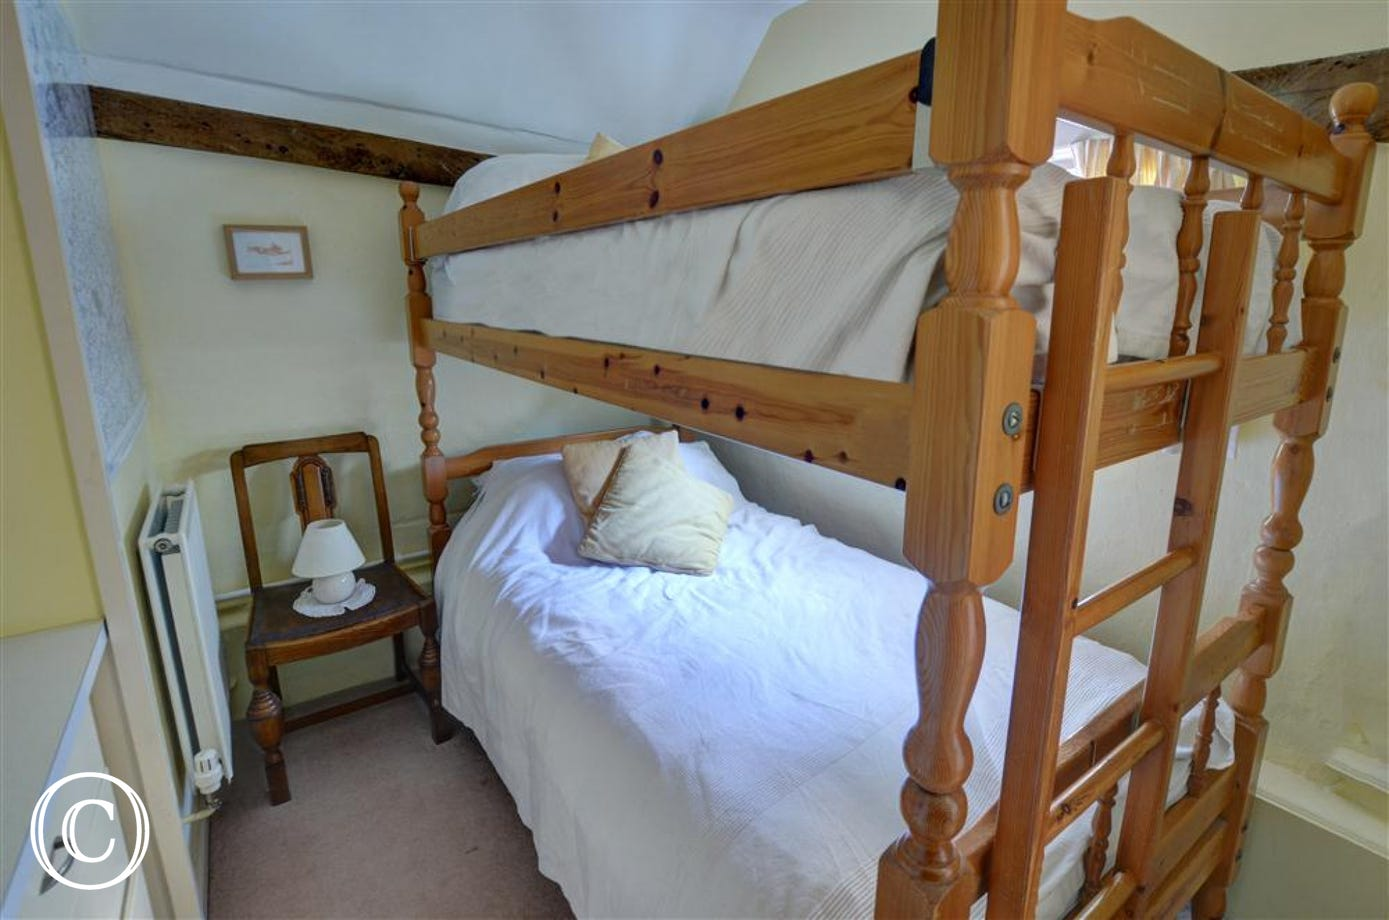 This bunk bedded room will suit two children down to the ground and is located off the kitchen.